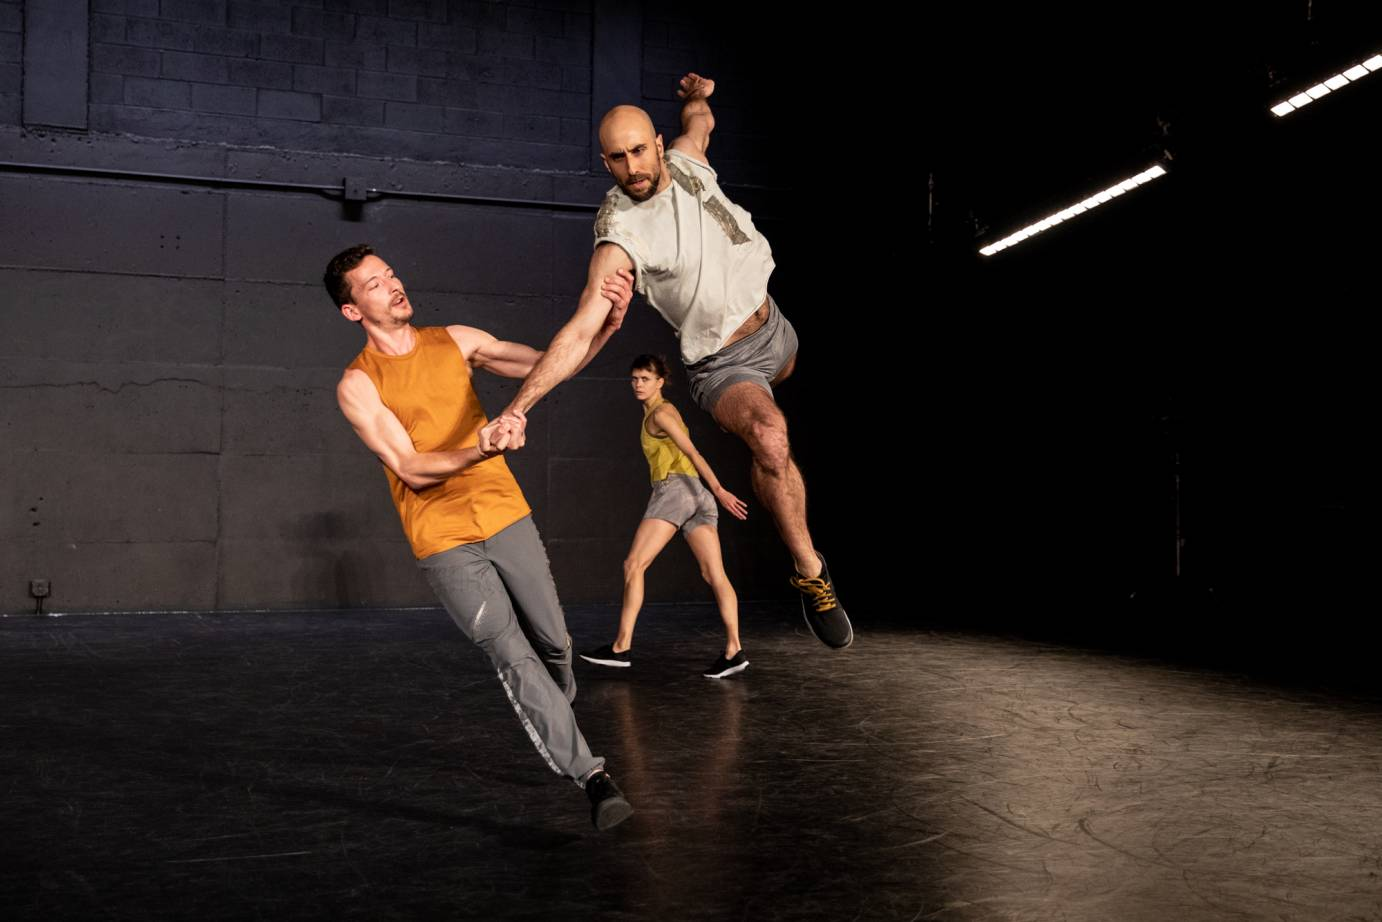 One man partners another in a stage leap as a woman looks on in the background